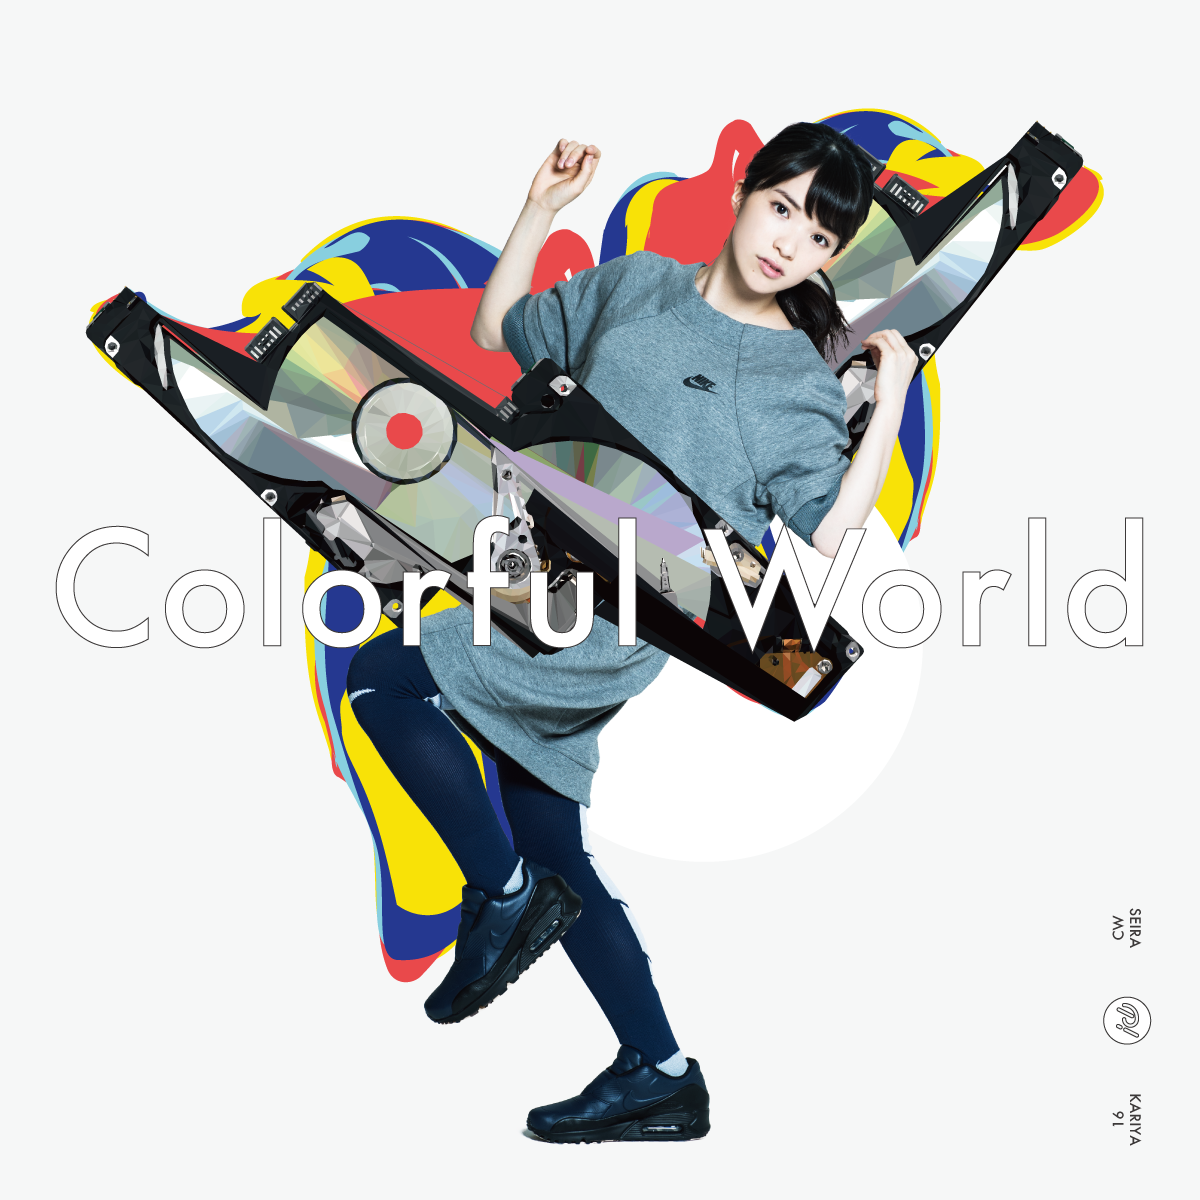 Seira_Kariya_Colorful_World_EP_02